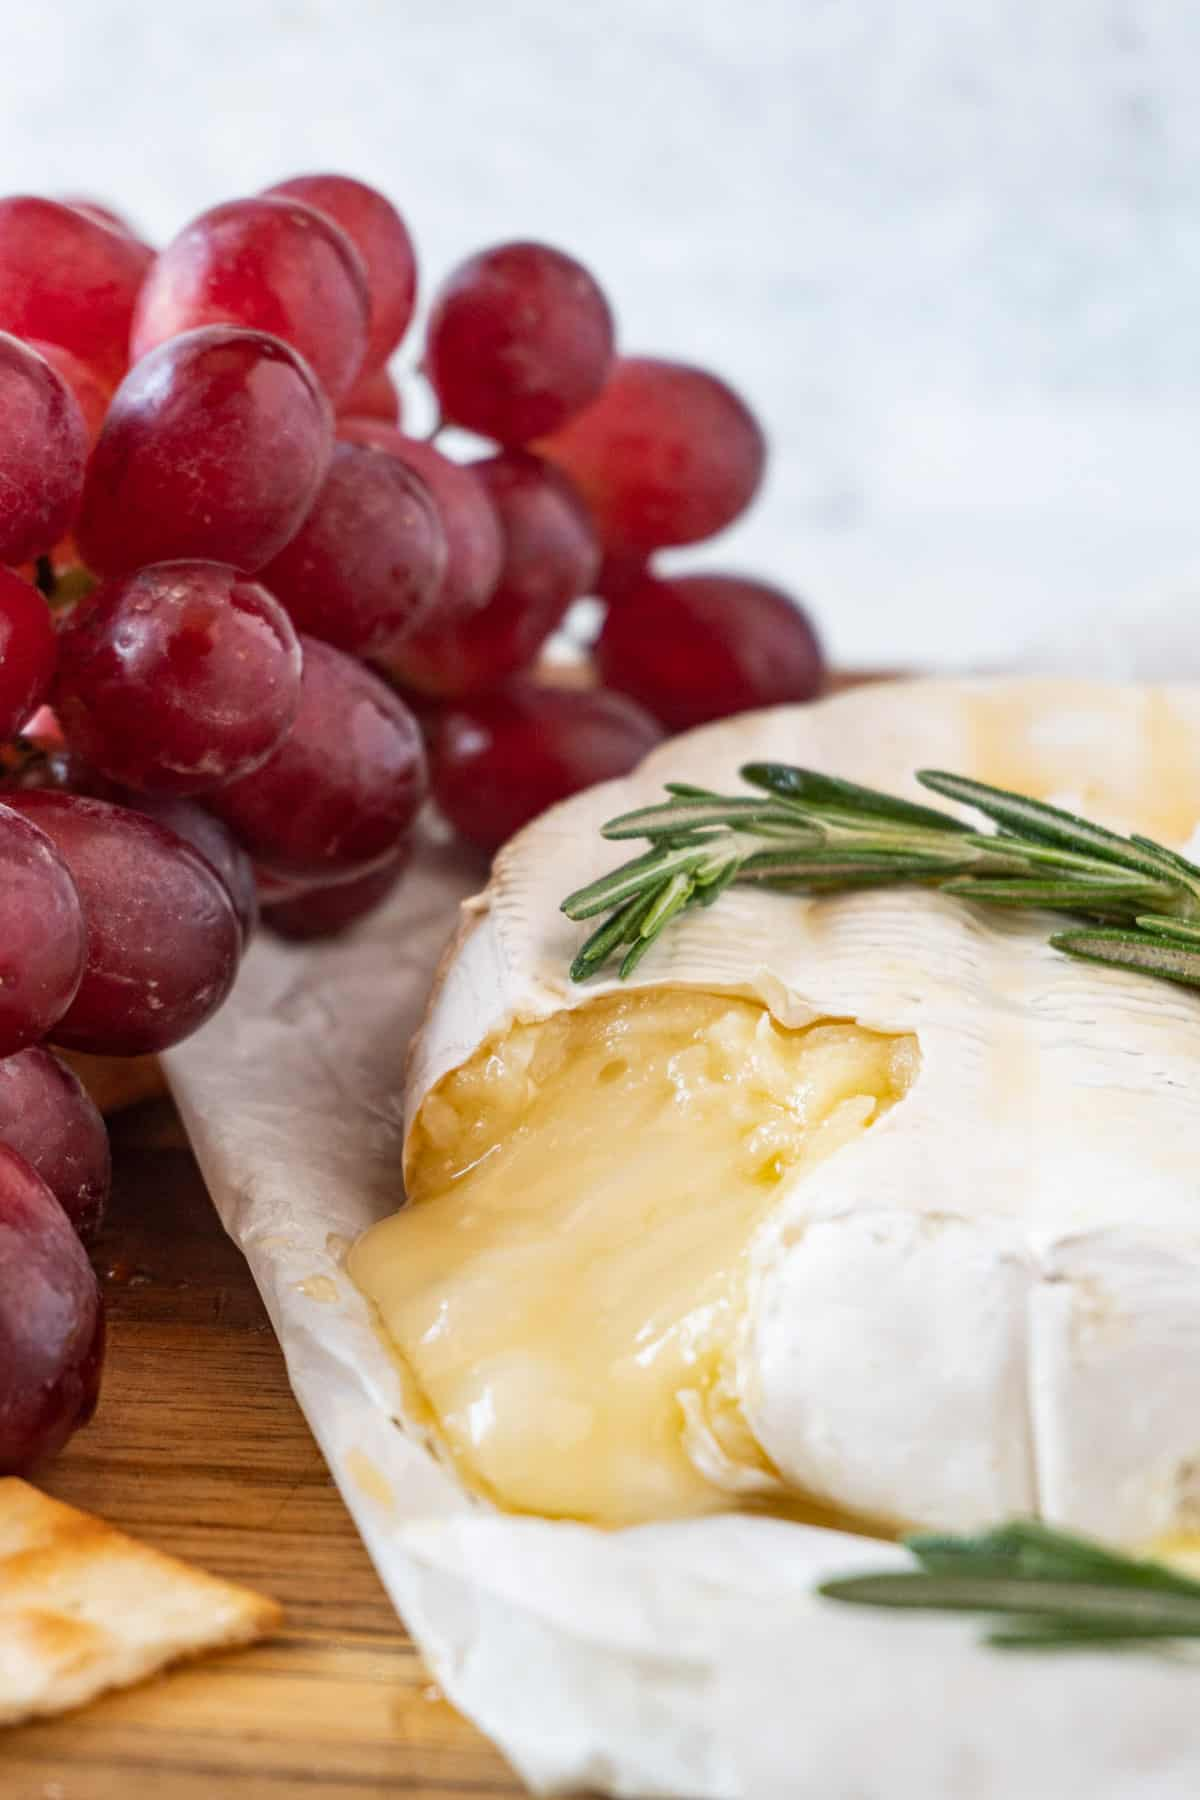 brie with melted cheese pouring out with grapes in background